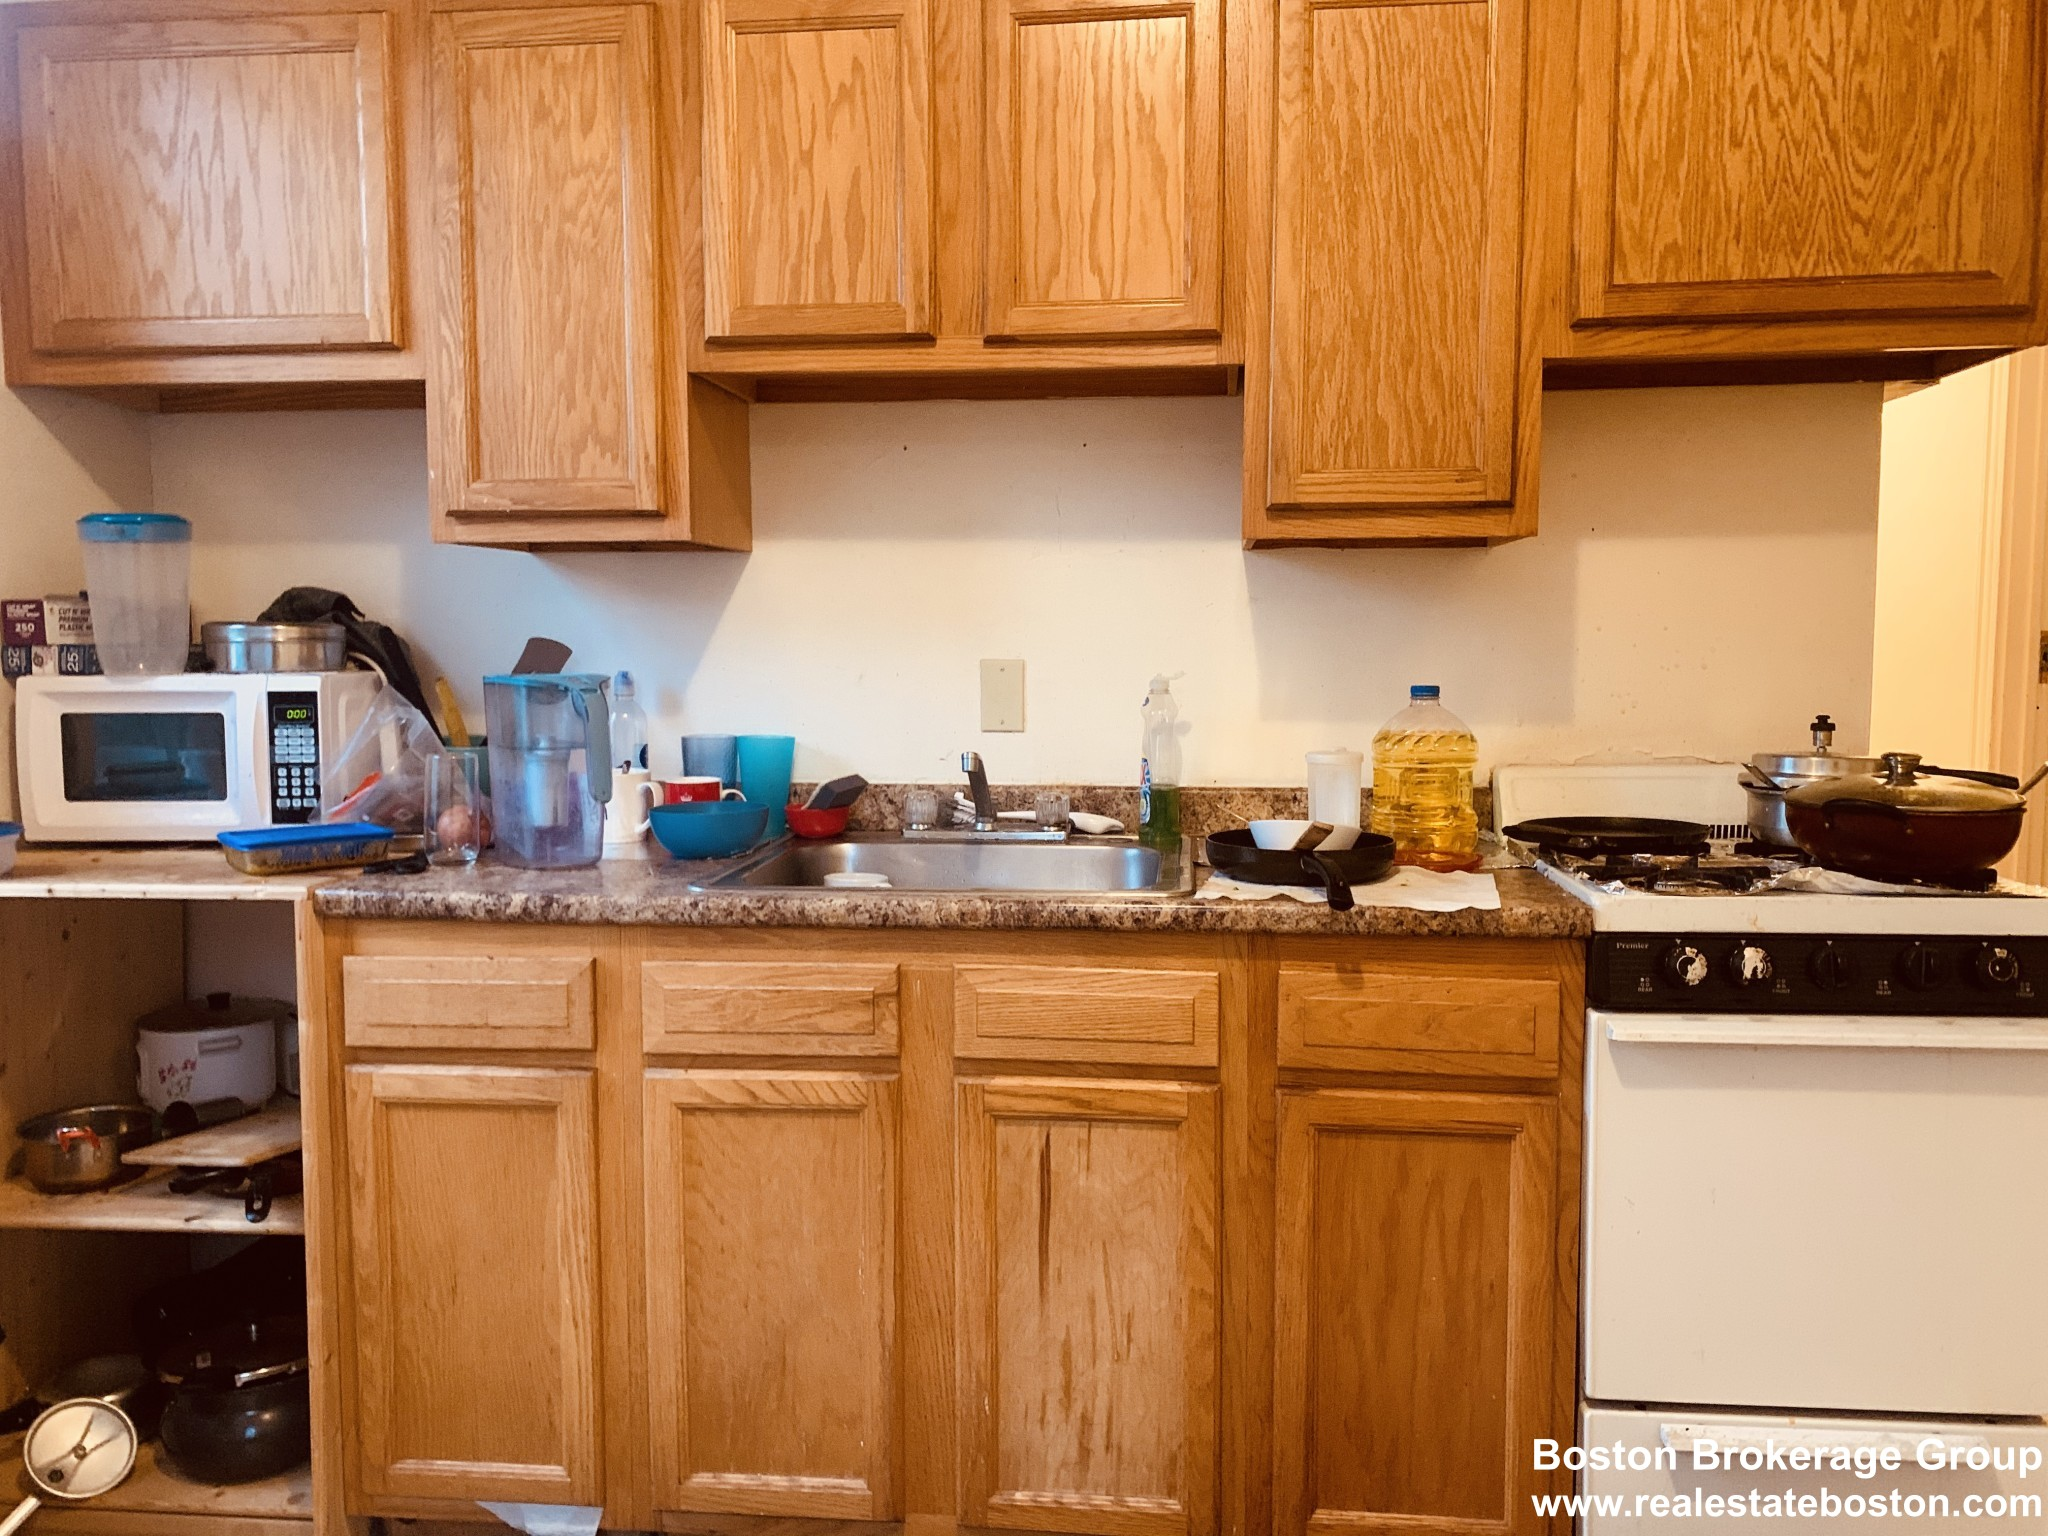 Pictures of  property for rent on Tremont St., Boston, MA 02120